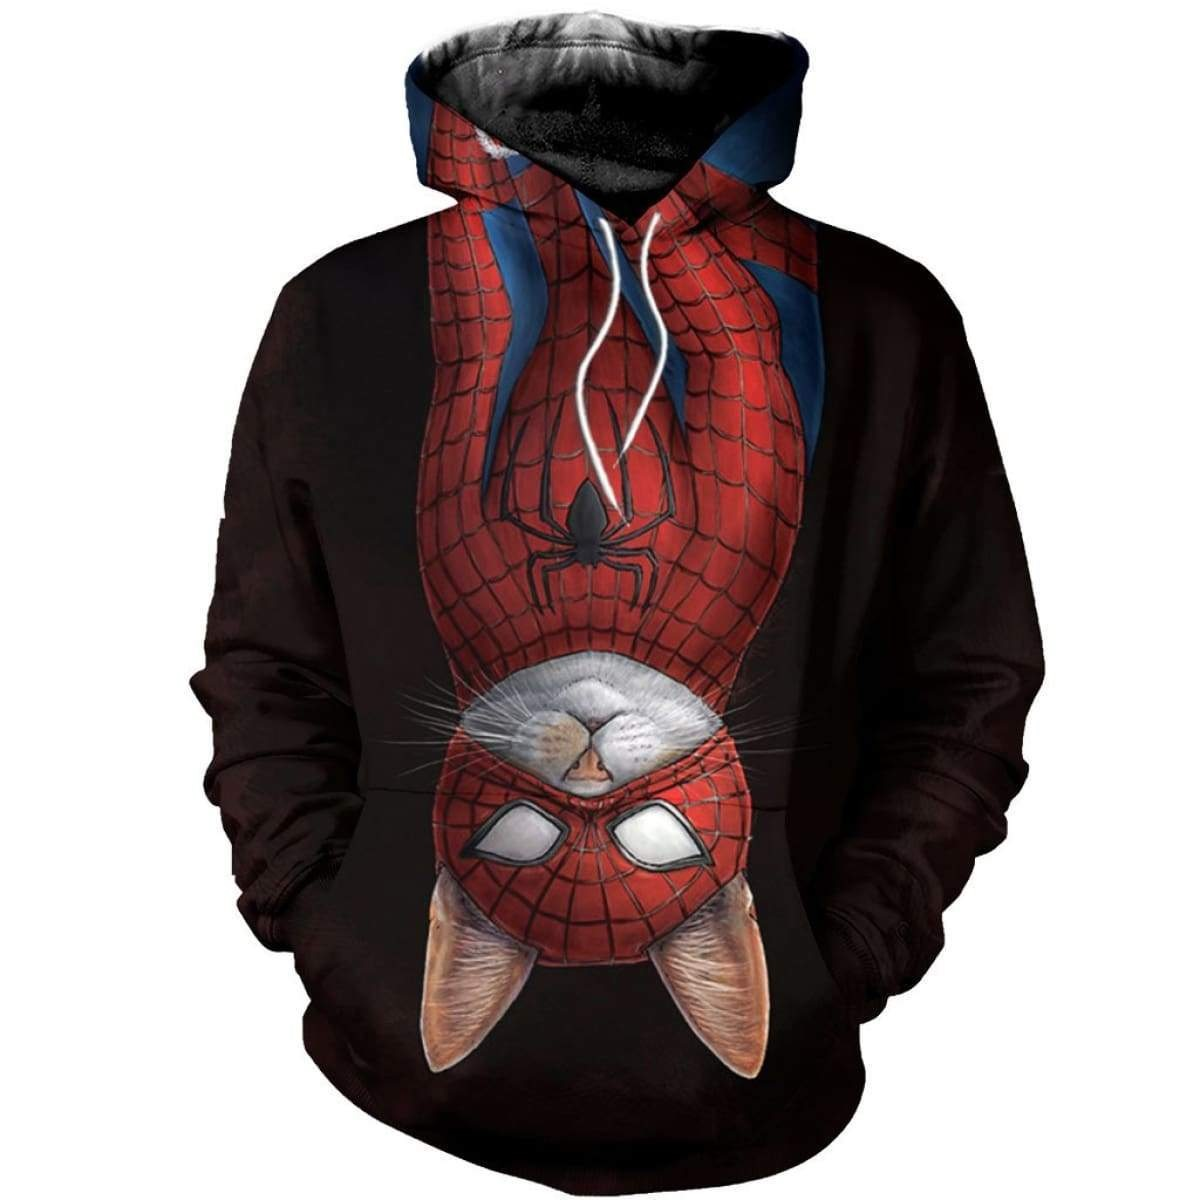 Spider-cat all over printed hoodie